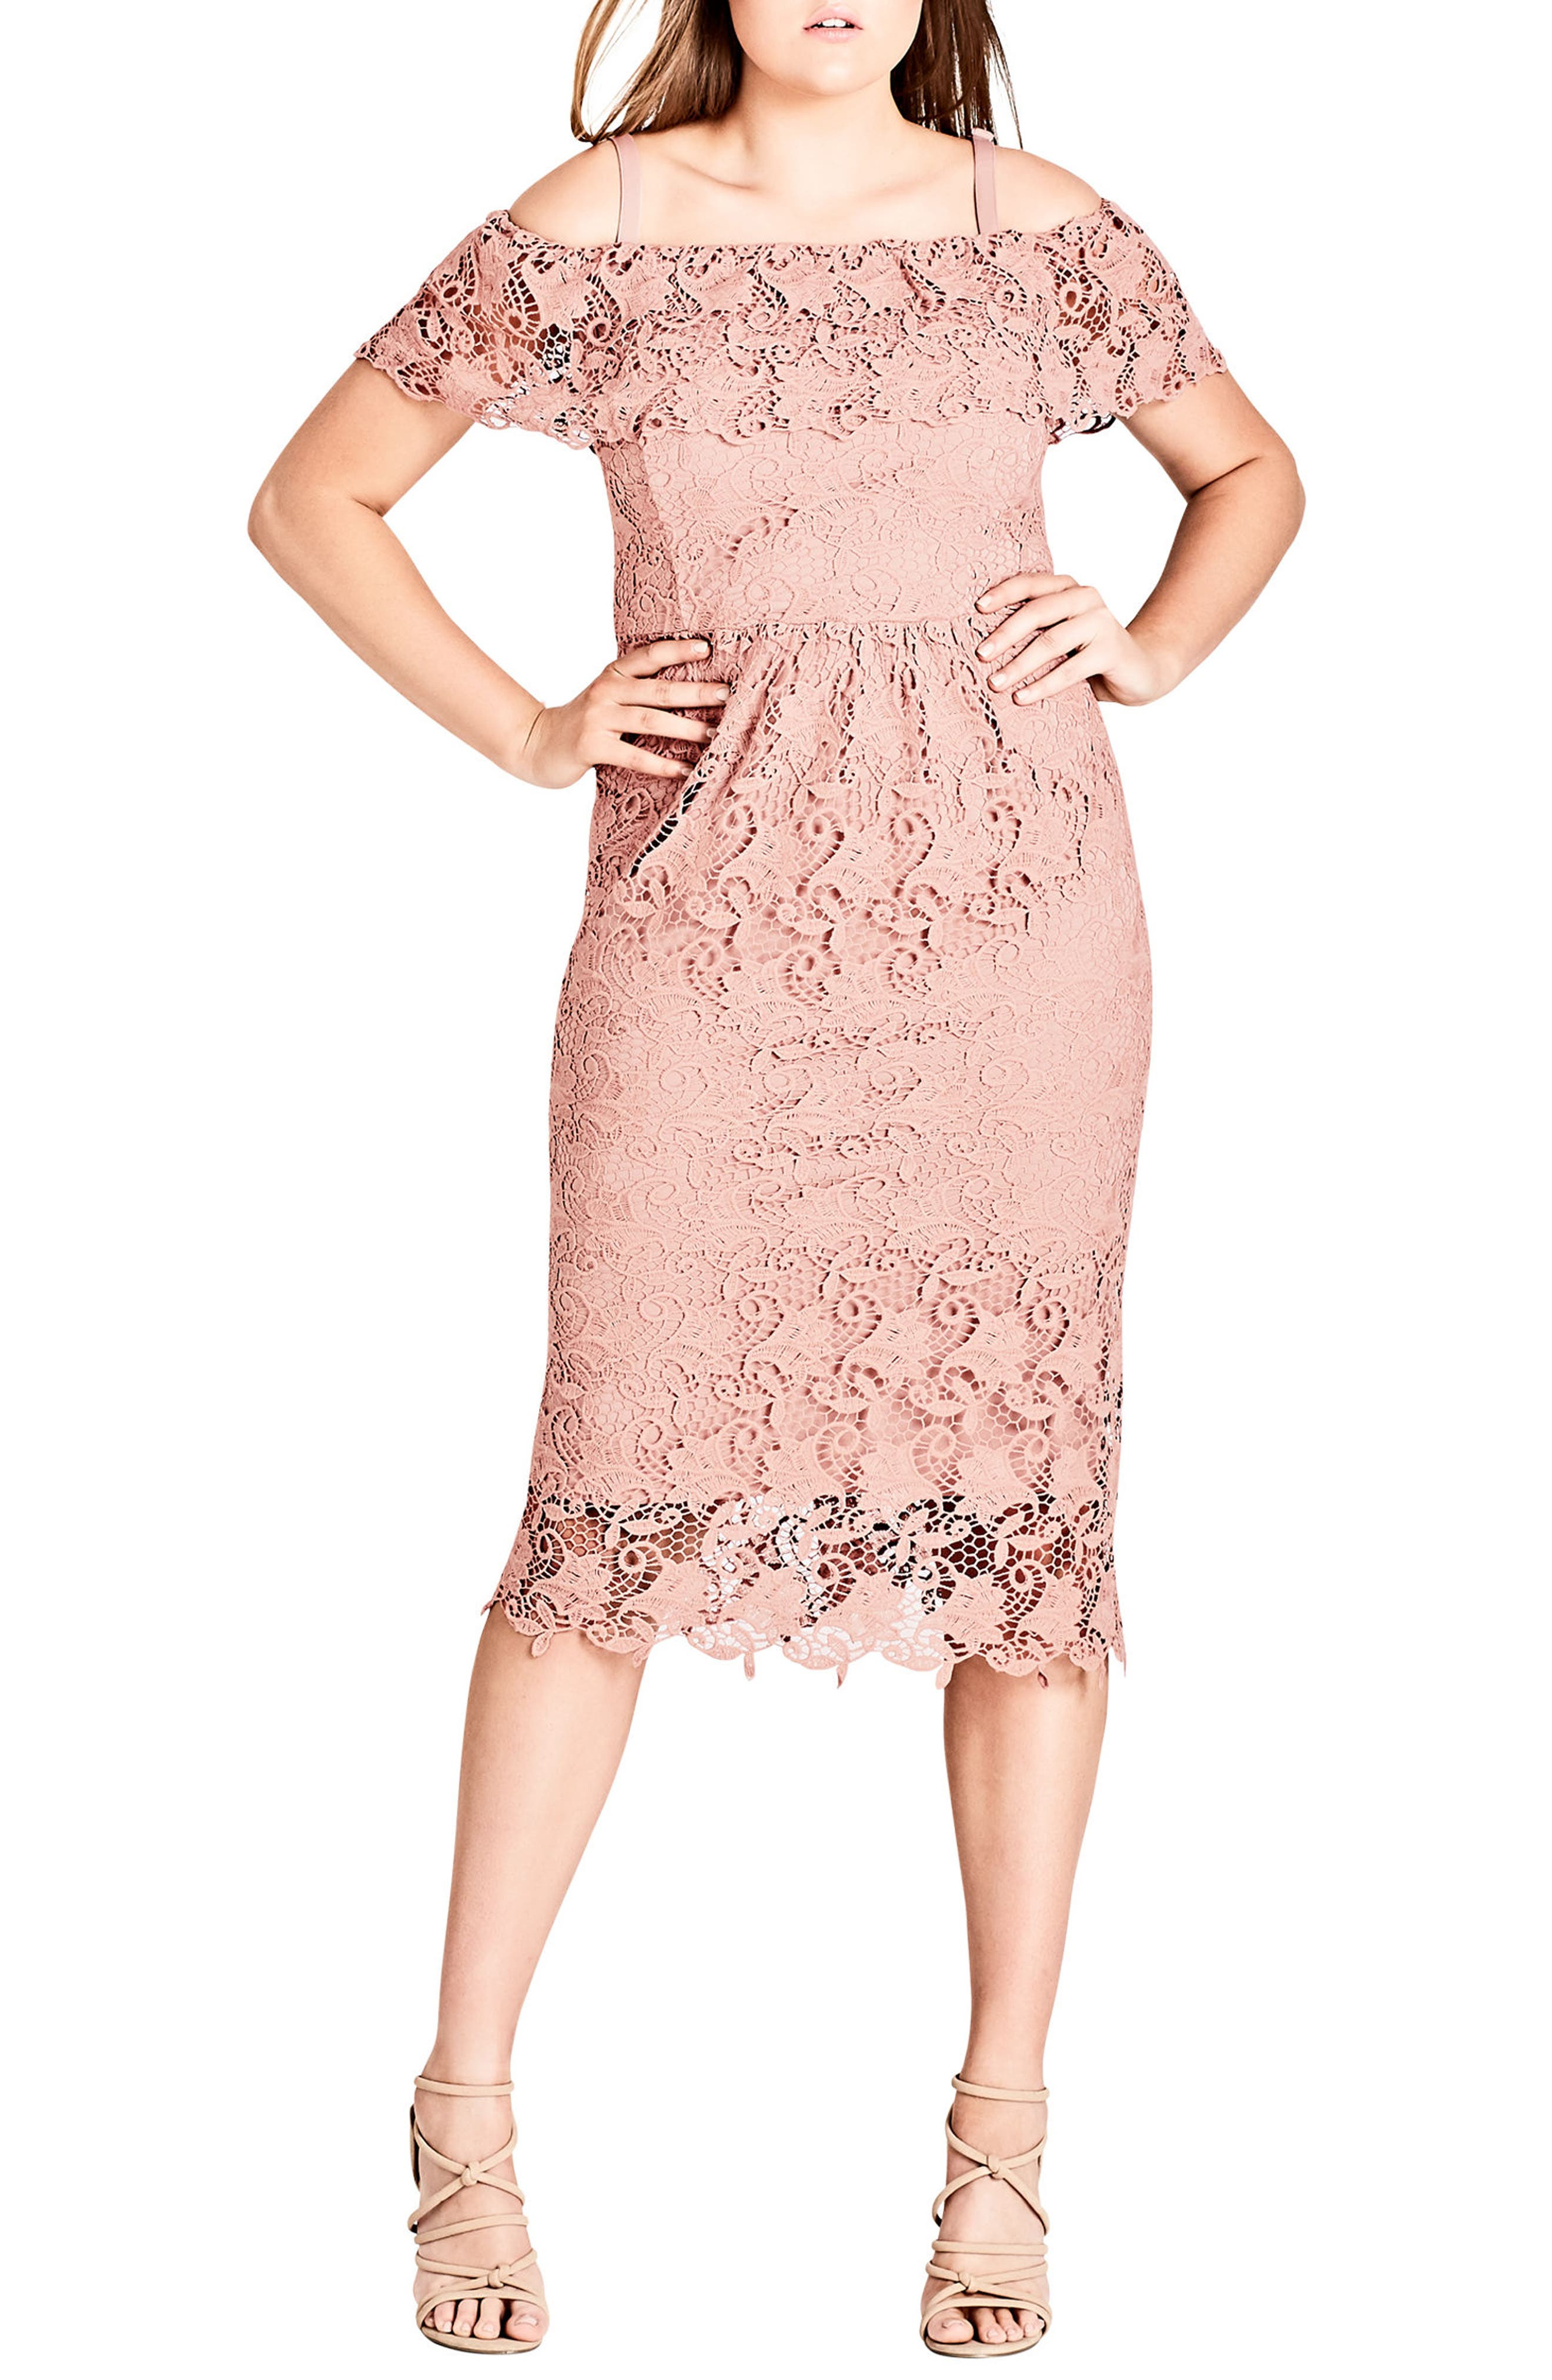 Spring Day Off the Shoulder Lace Sheath Dress,                             Main thumbnail 1, color,                             Ballet Pink